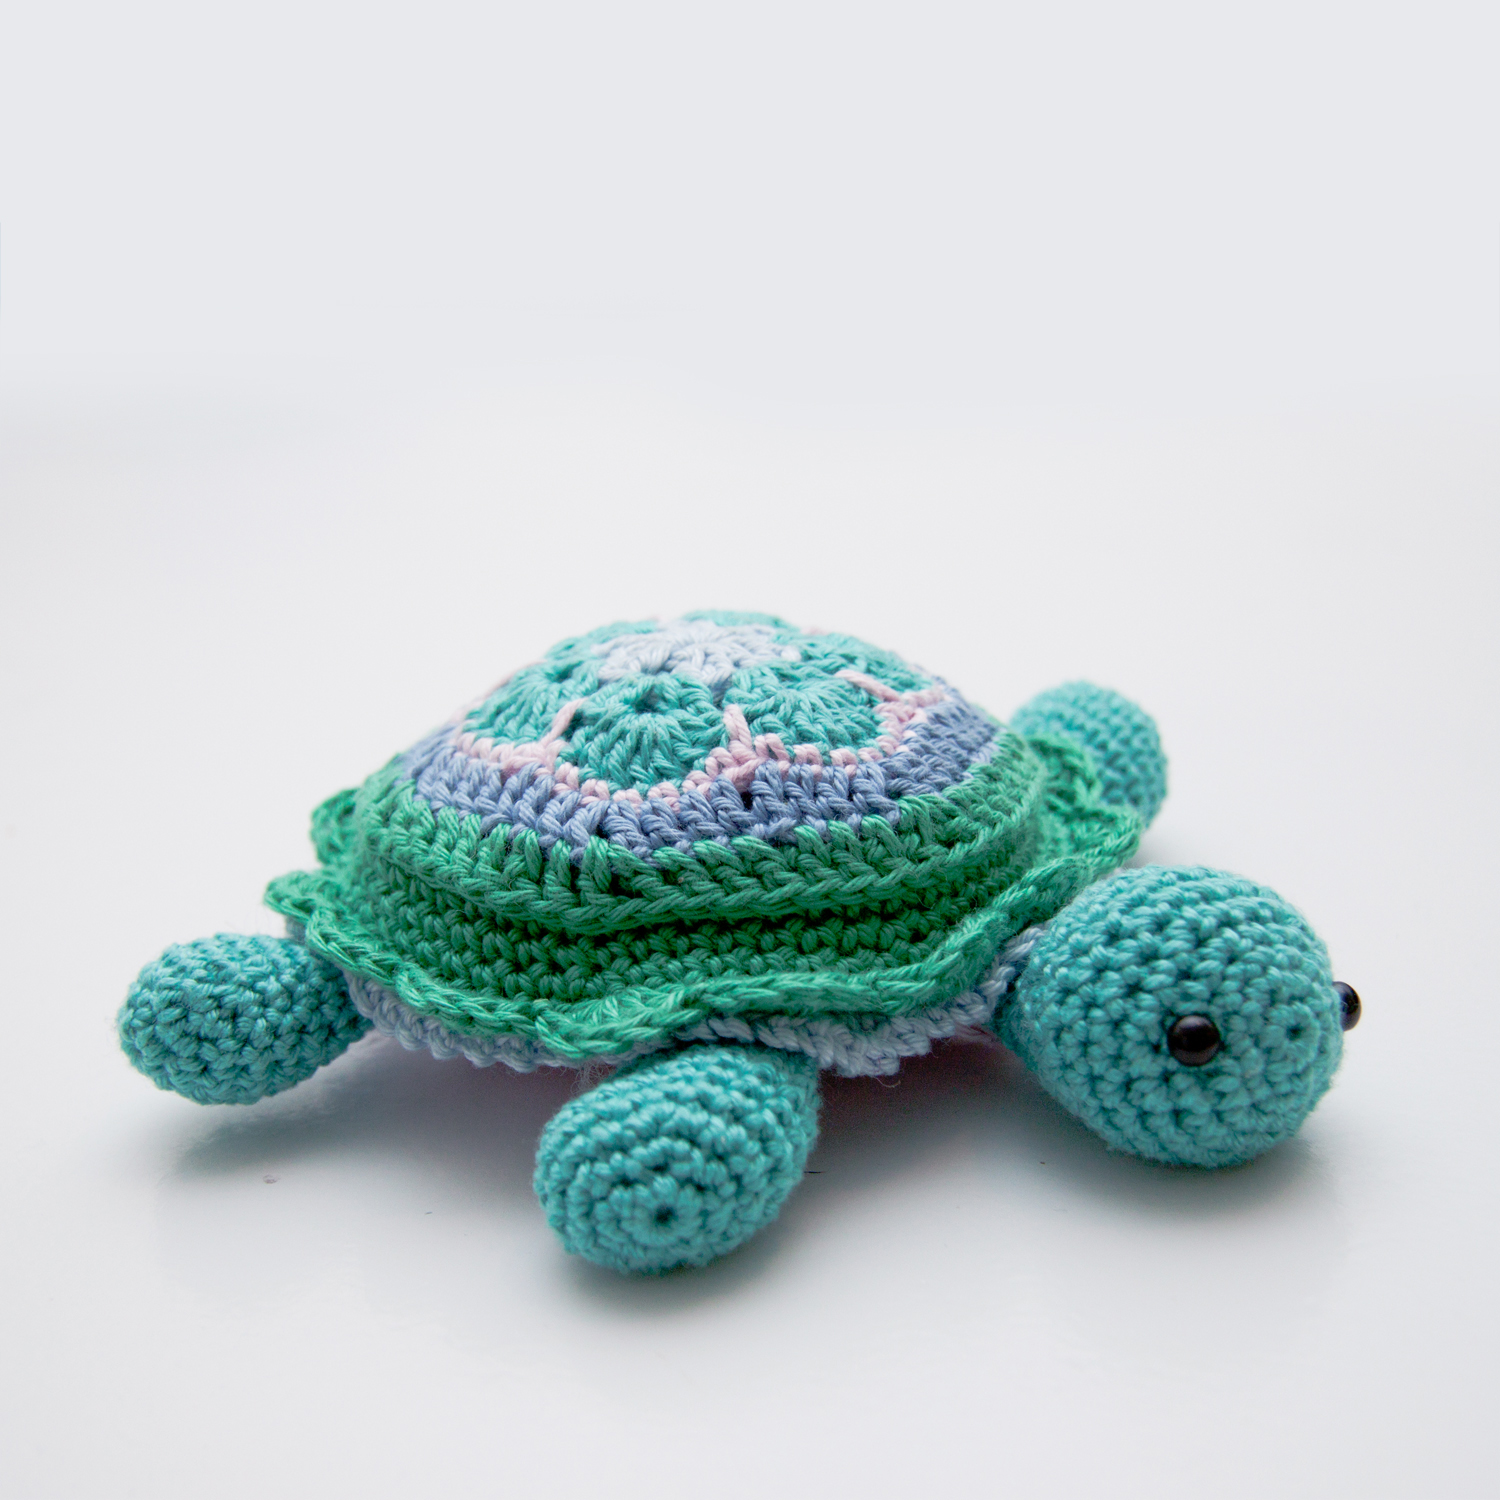 Amigurumi Baby Turtle Crochet Free Patterns | 1500x1500